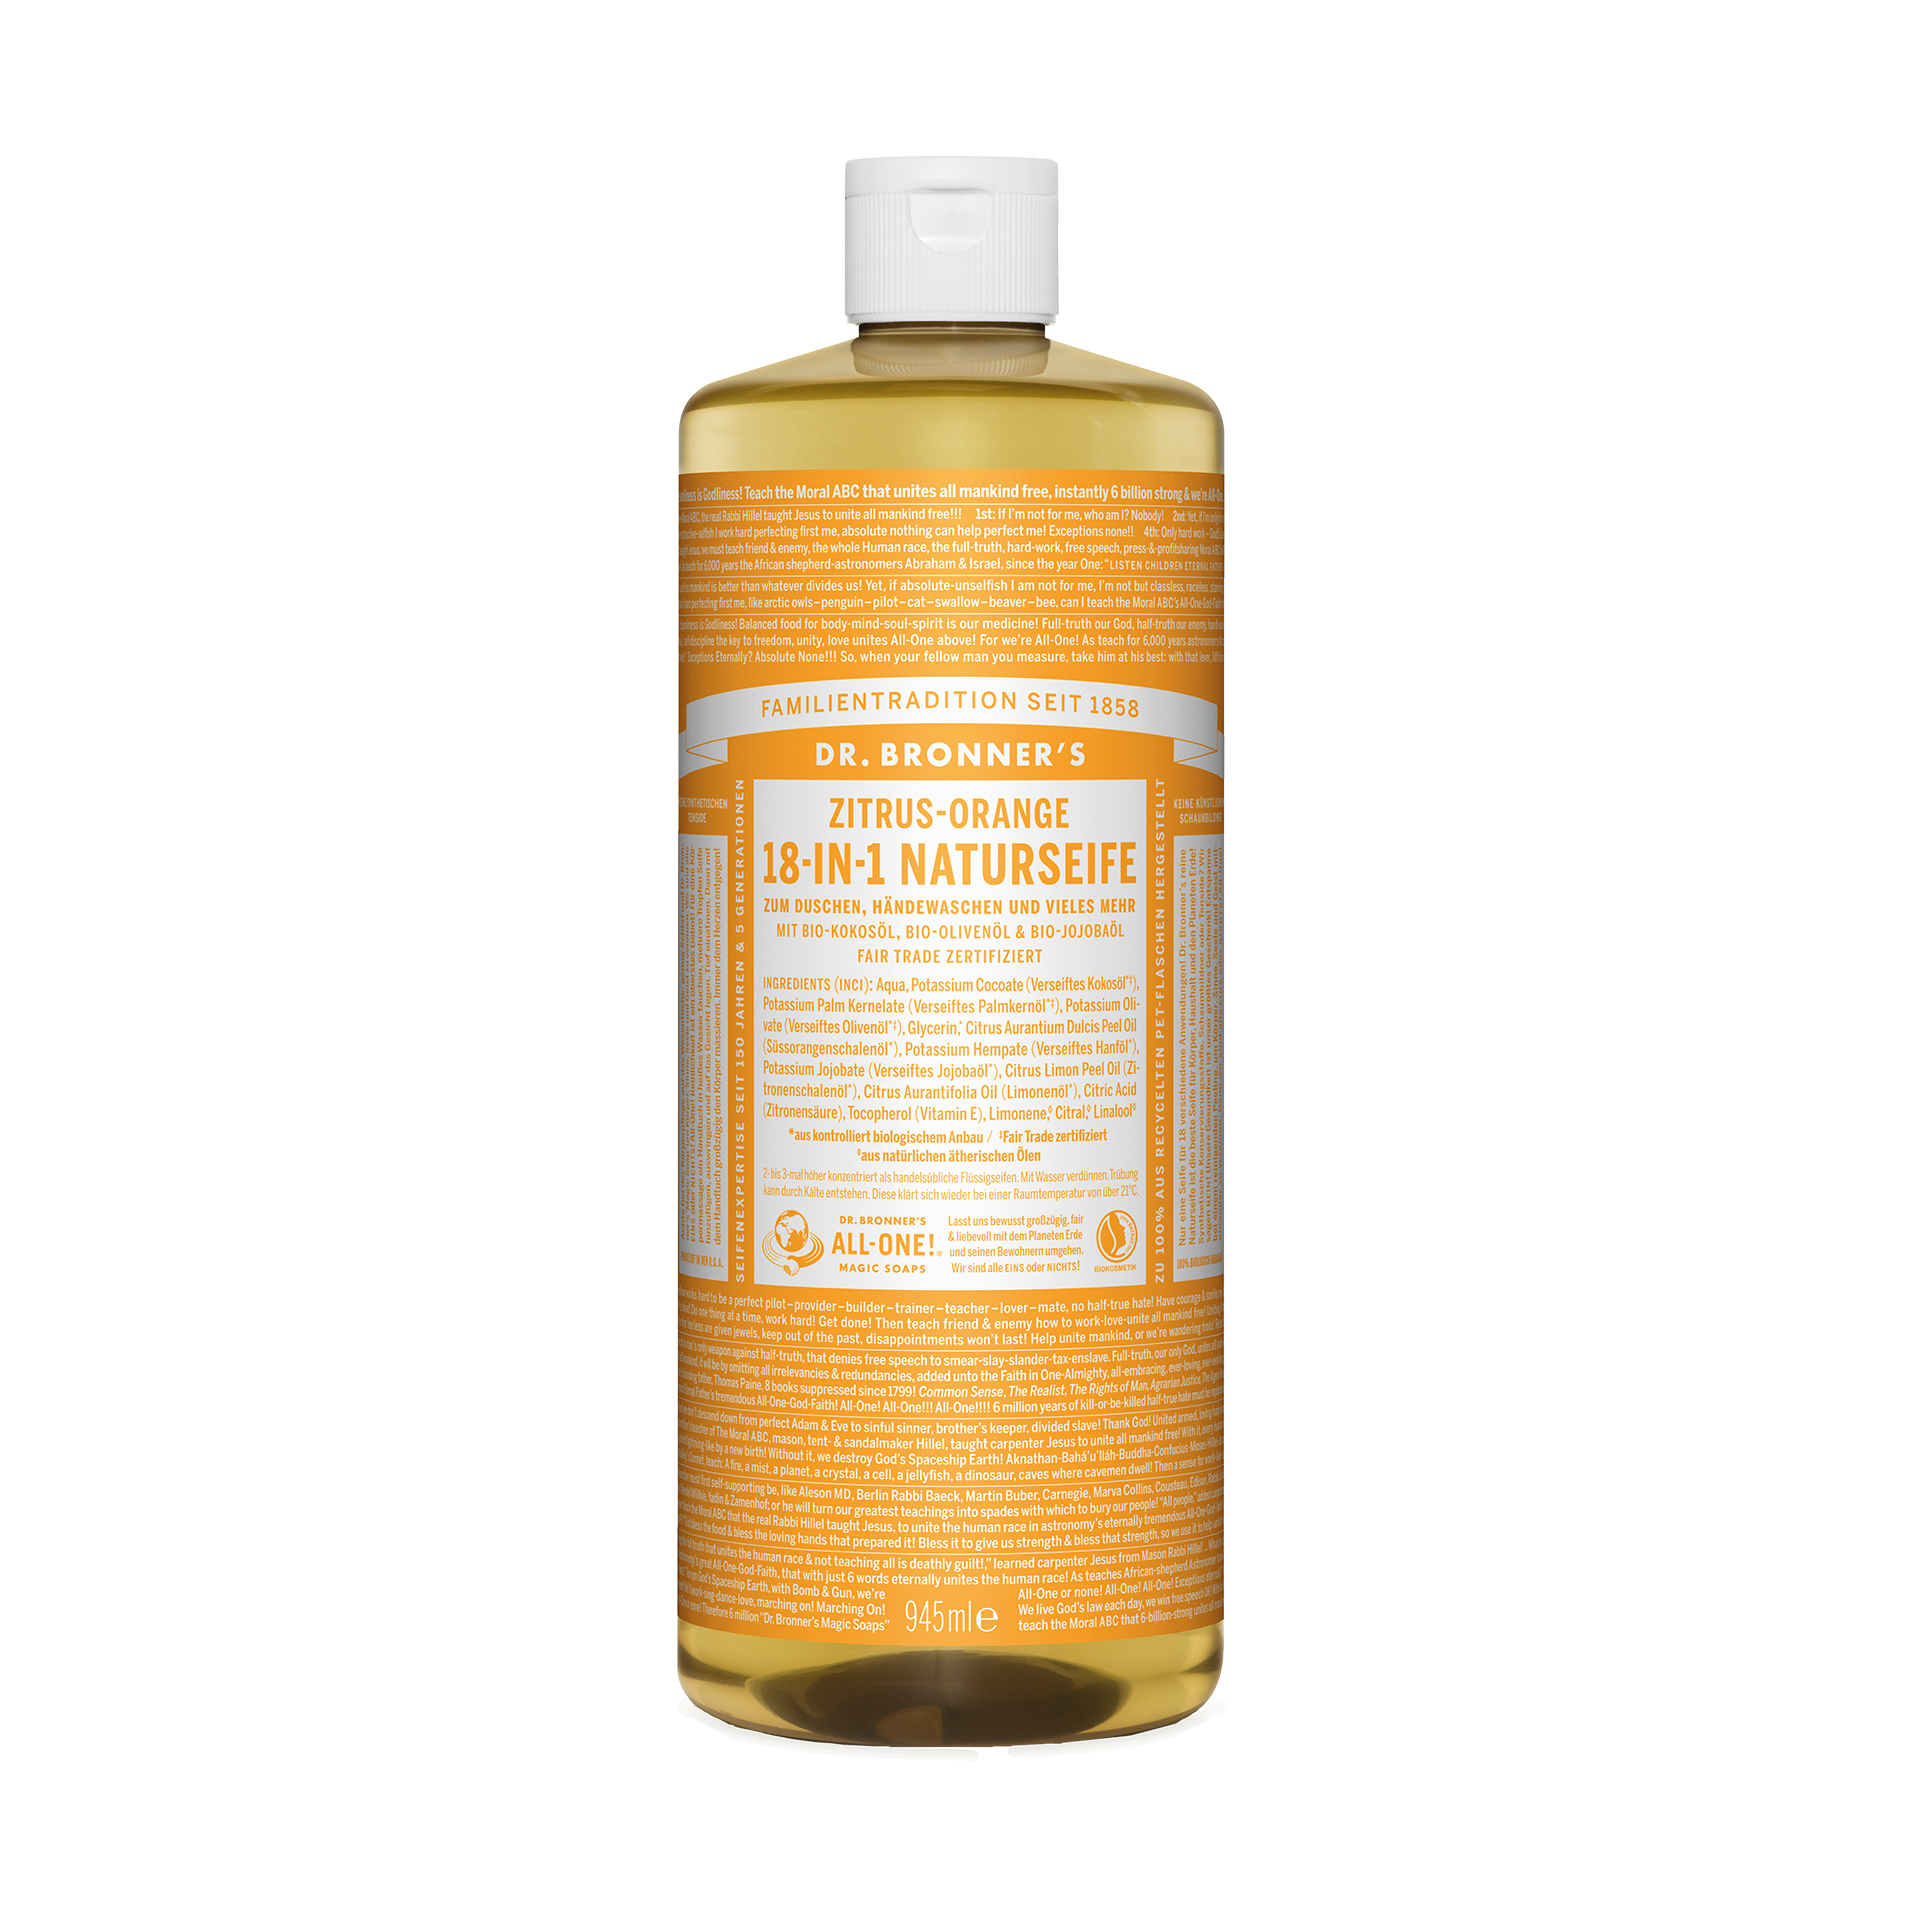 Dr. Bronner's 18-in-1 Naturseife, Zitrus-Orange, 945 ml